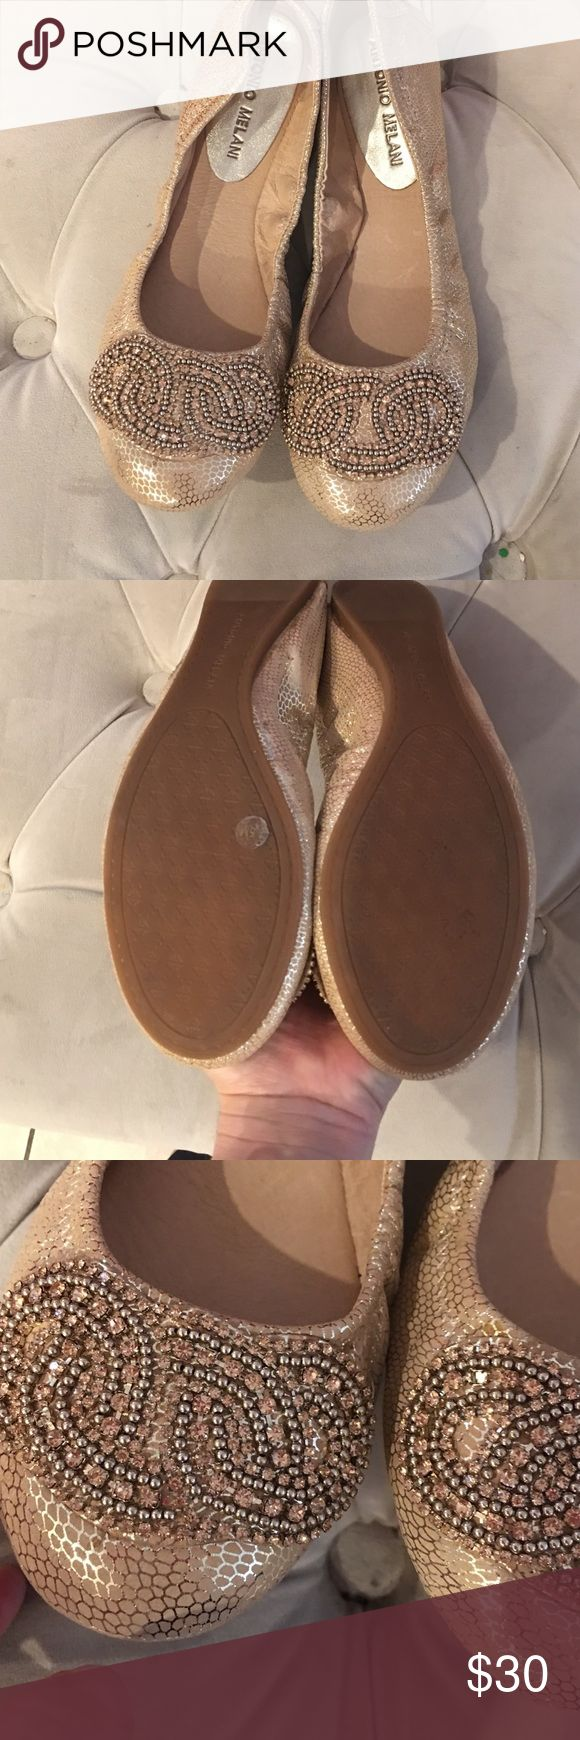 Antonio Melani flats like new Antonio Melani flats like new ANTONIO MELANI Shoes Flats & Loafers